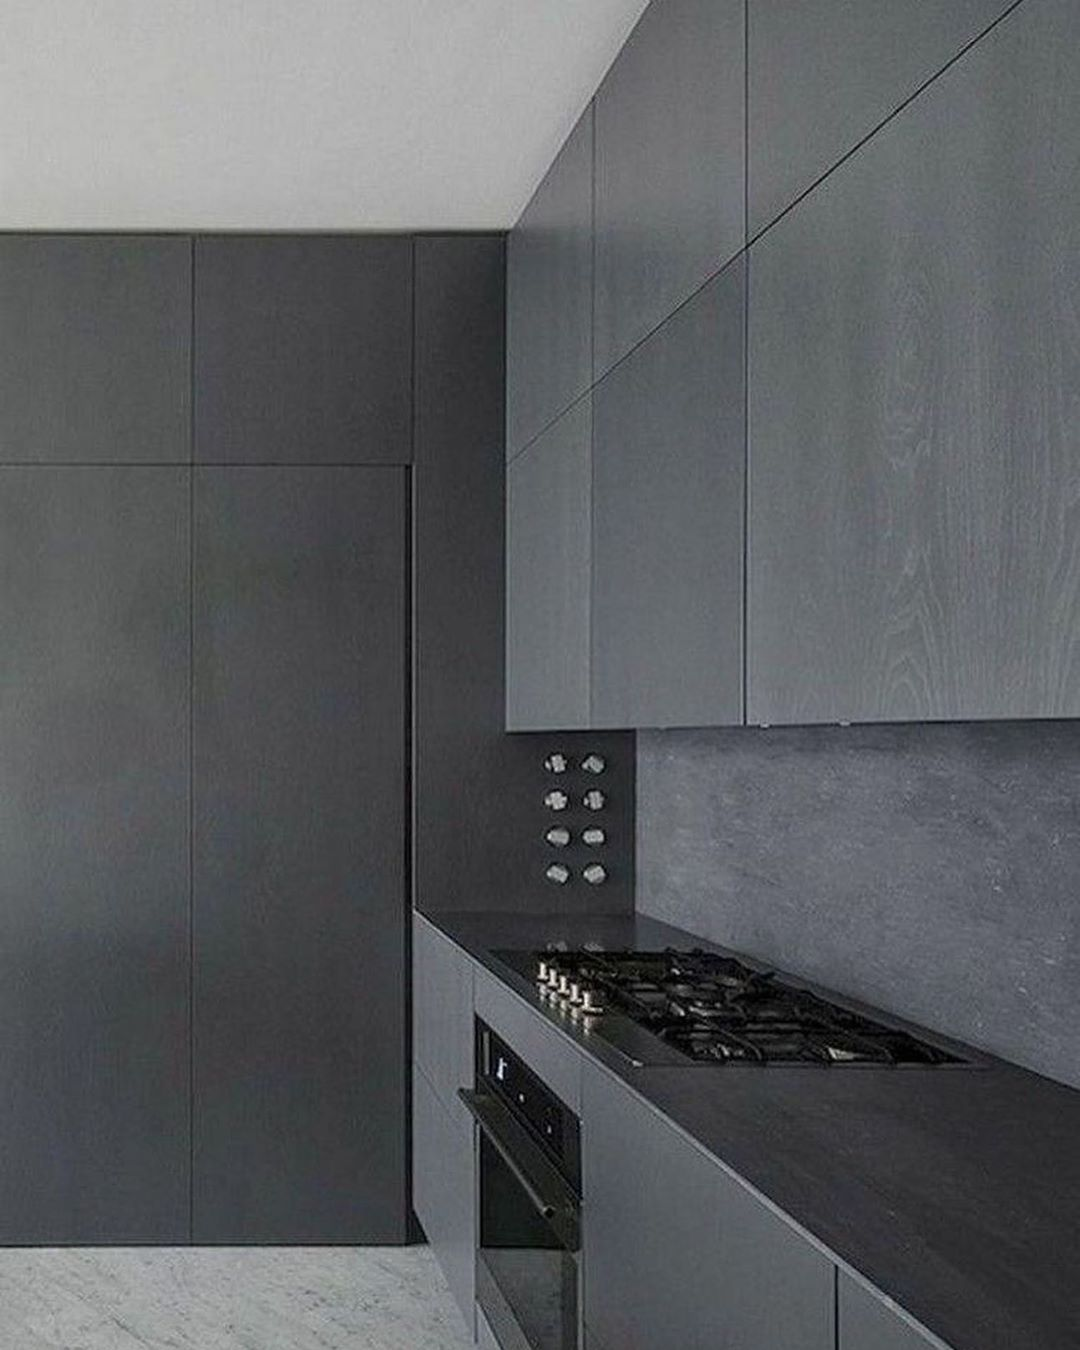 Home Inspiration And Ideas On Instagram Kitchen Design Sleek Matt Black Kitchen Design Who Els In 2020 Grey Kitchen Designs Kitchen Design Companies Grey Kitchen